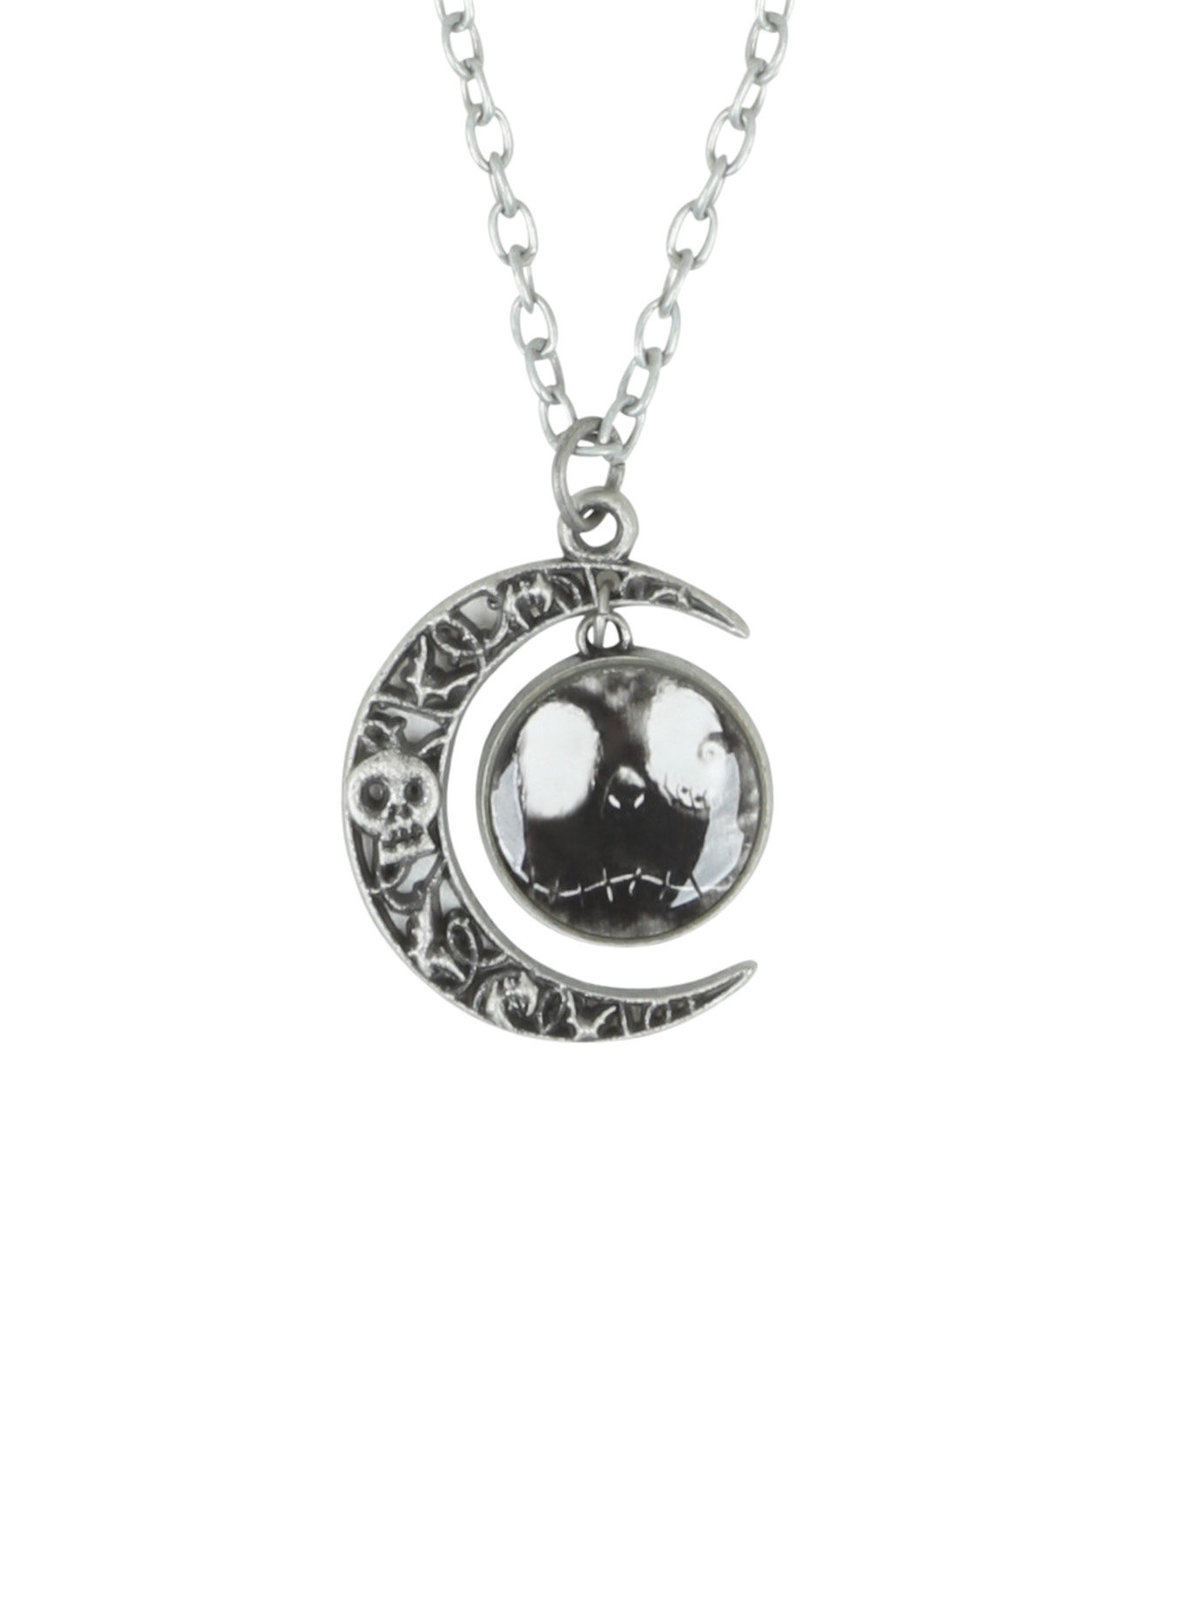 Neon Tuesday: Nightmare Before Christmas - Jack & Moon Necklace image